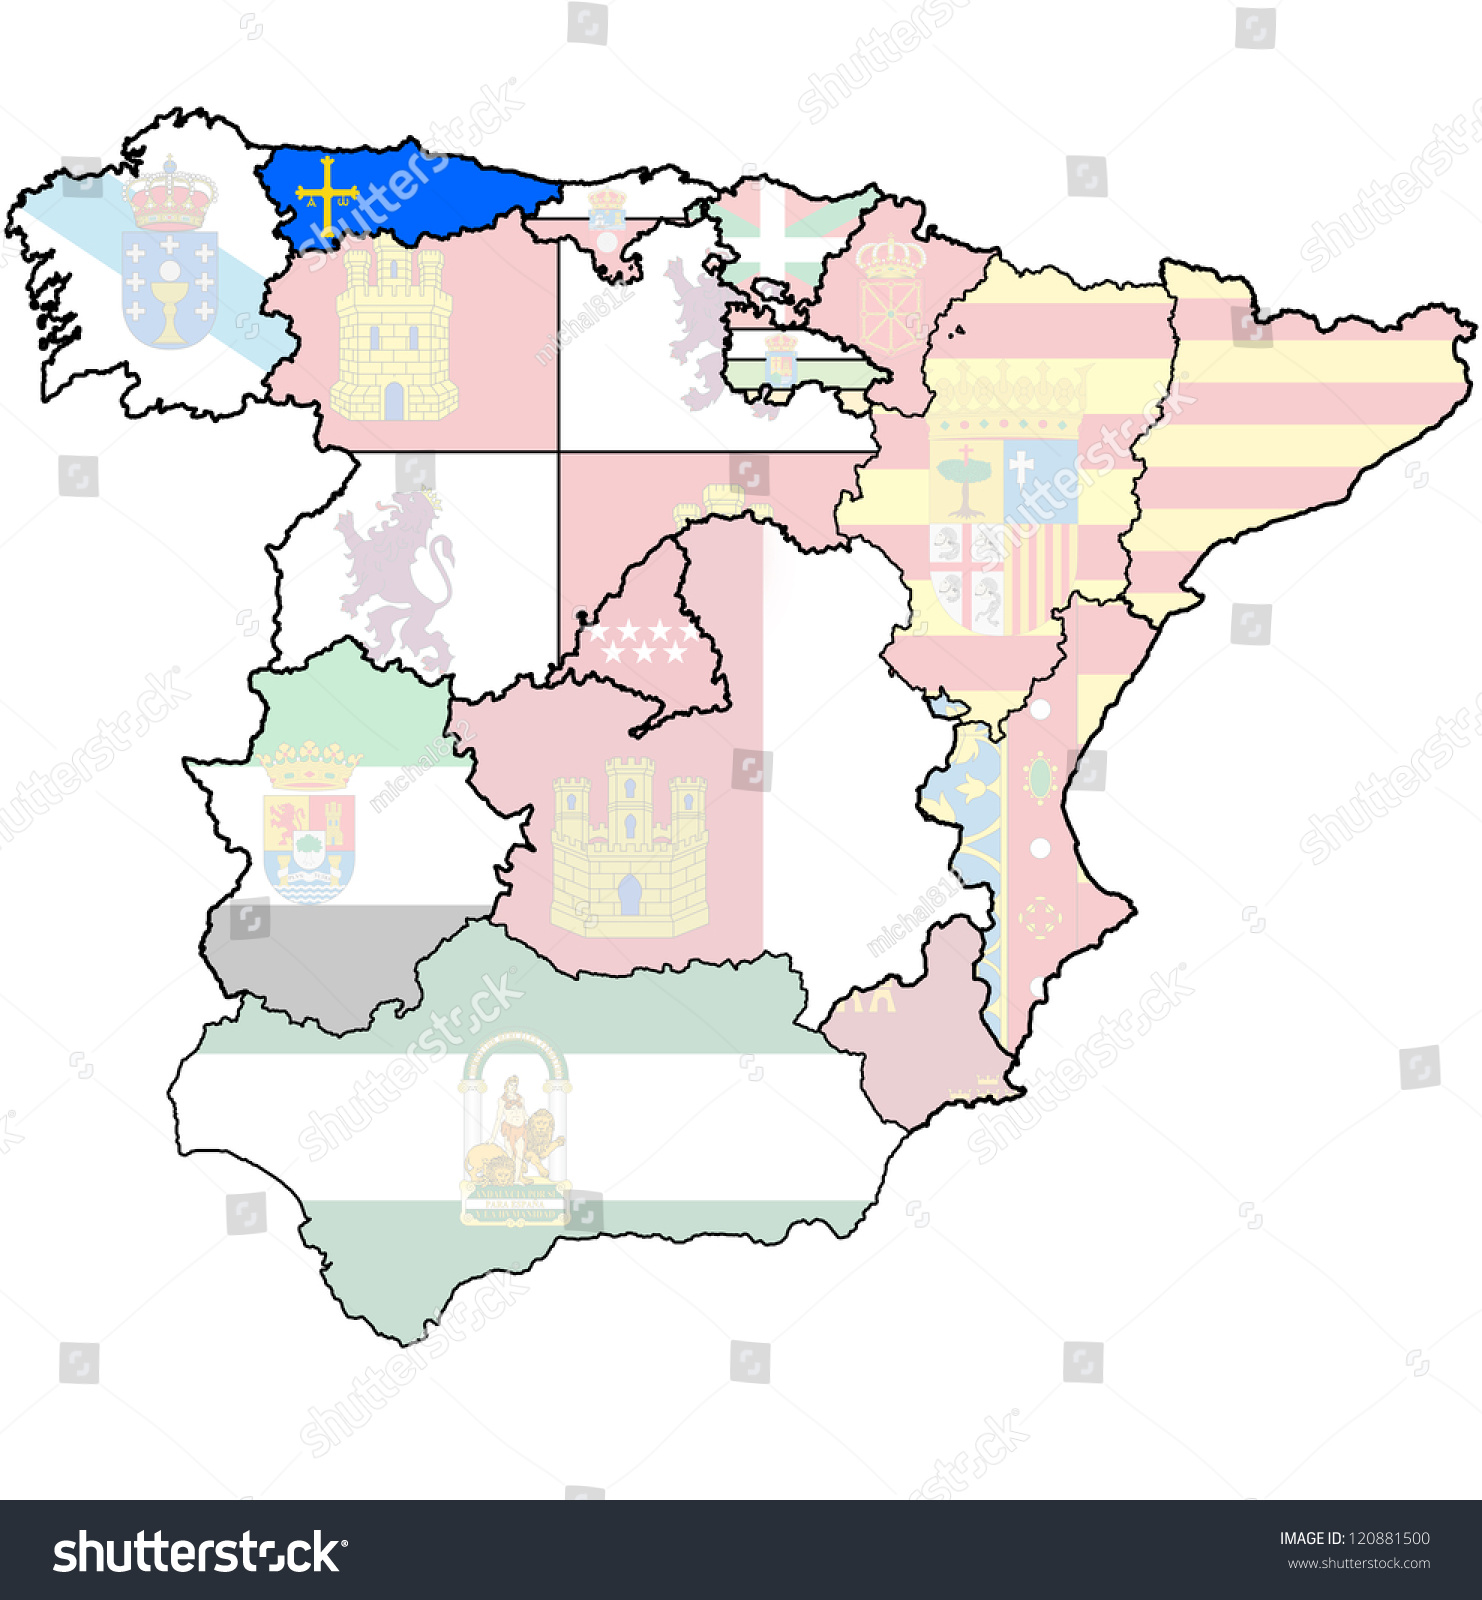 Asturias Region On Administration Map Regions Stock Illustration